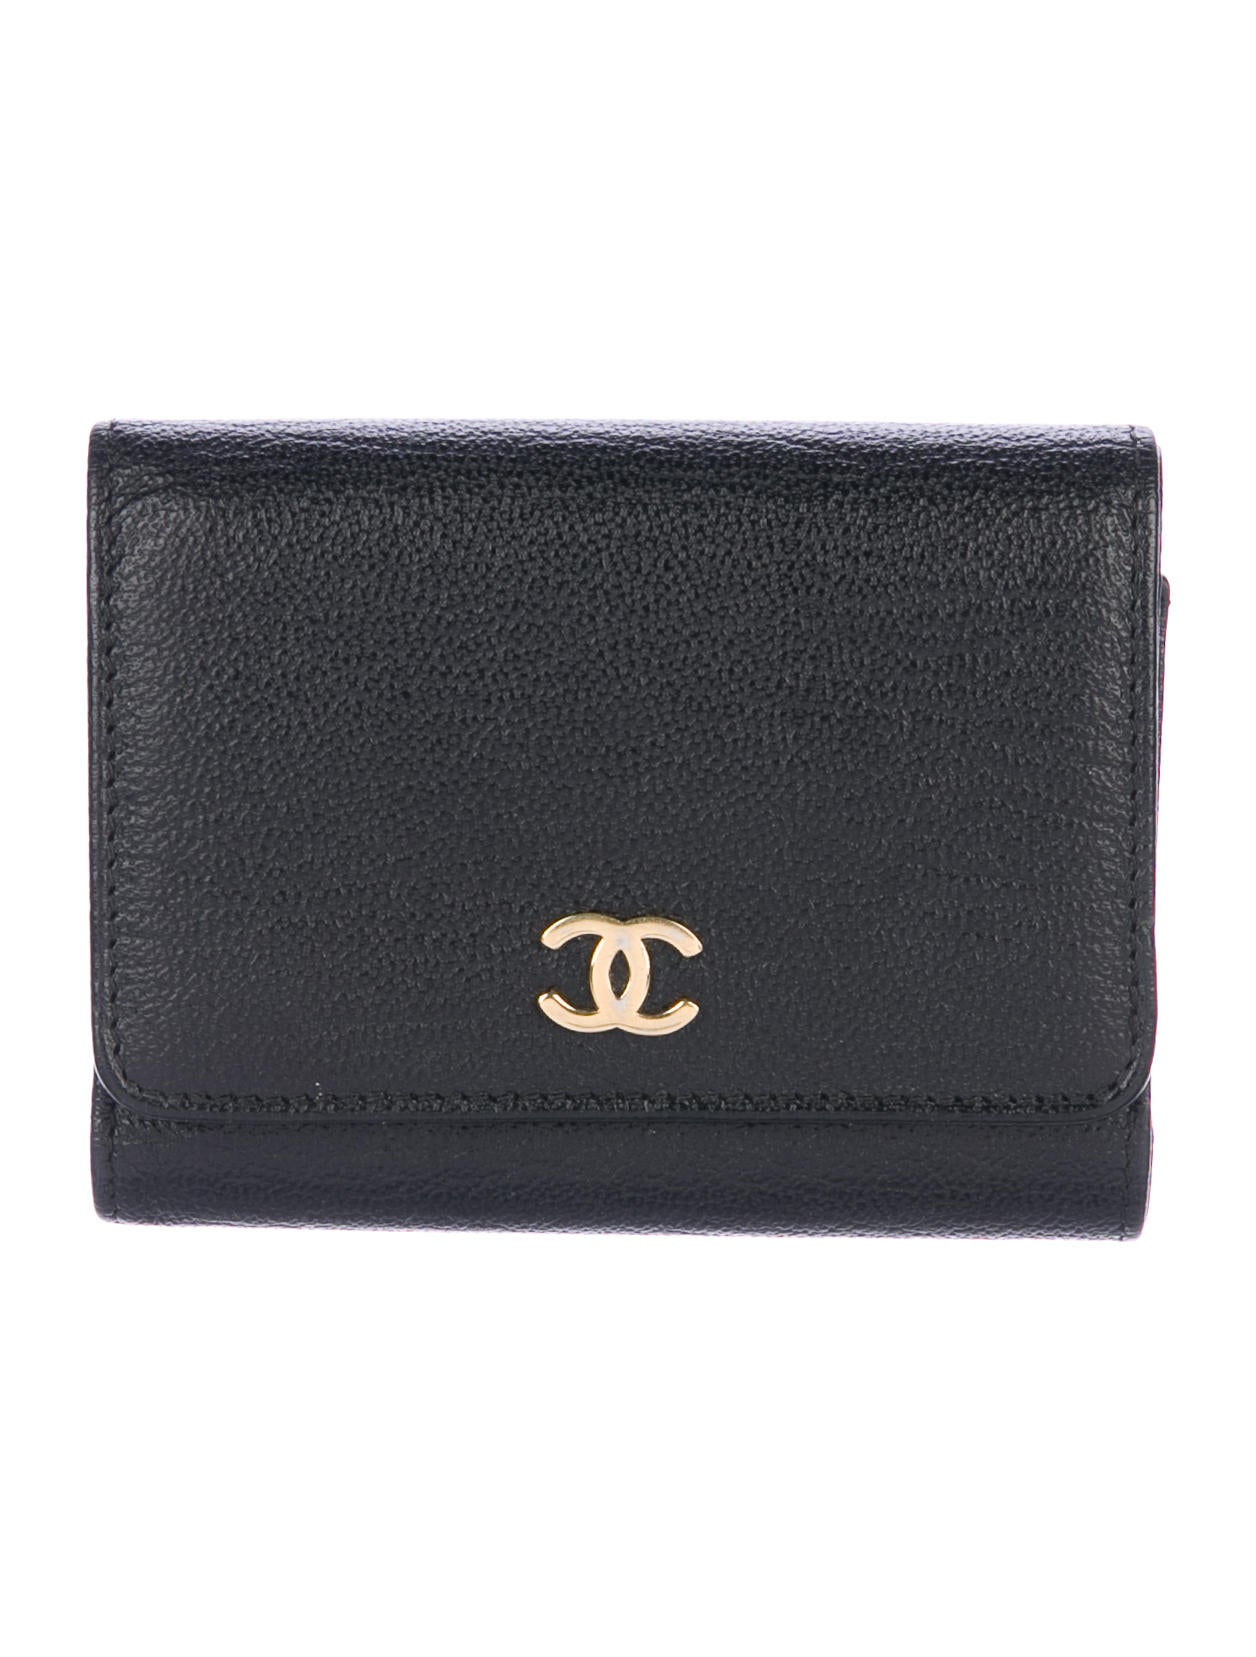 Chanel CC Business Card Holder - Accessories - CHA245581 | The RealReal